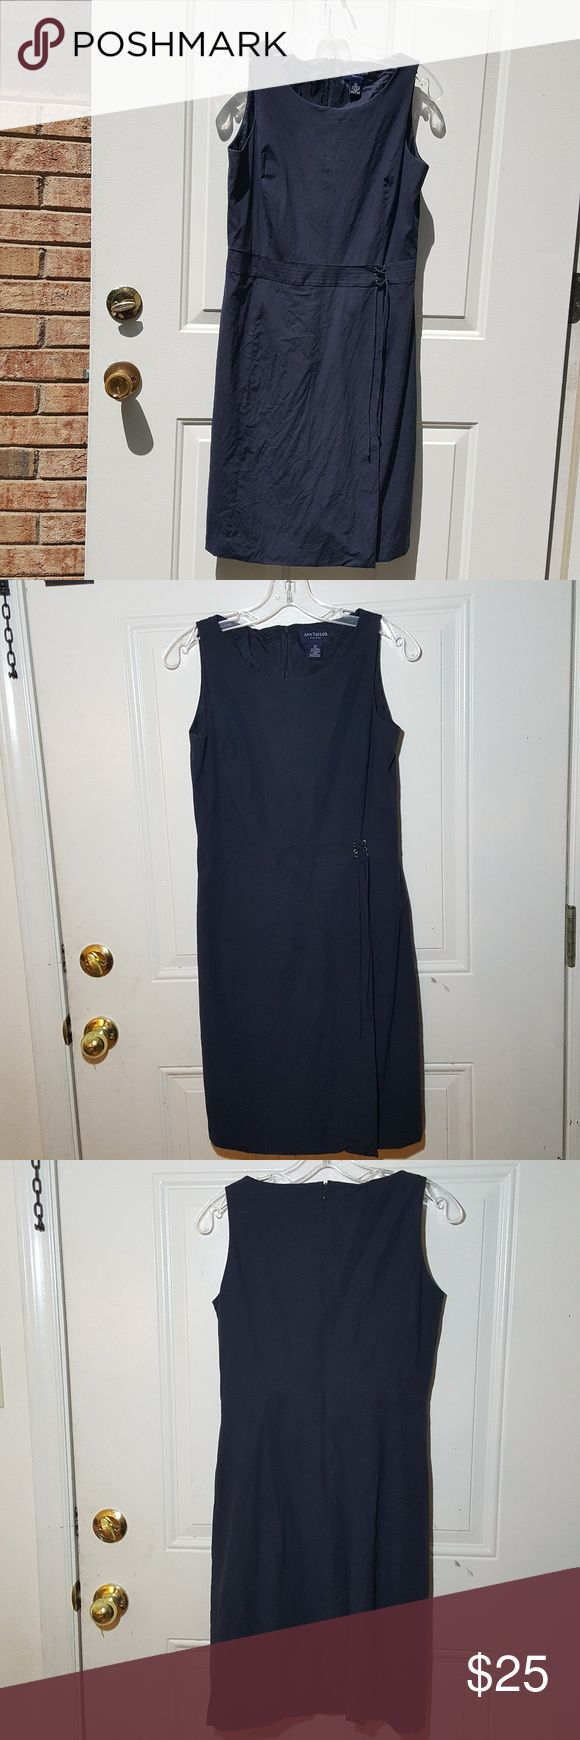 Ann Taylor sleeveless petite dress Ann Taylor  Petite  Size 6P  Navy blue dress with lining on the inside, back zipper. Towards the bottom of the dress there are 2 spots, very minimal and not noticeable as they get covered by the string.   Very nice and can be worn in any occasion. Ann Taylor Dresses